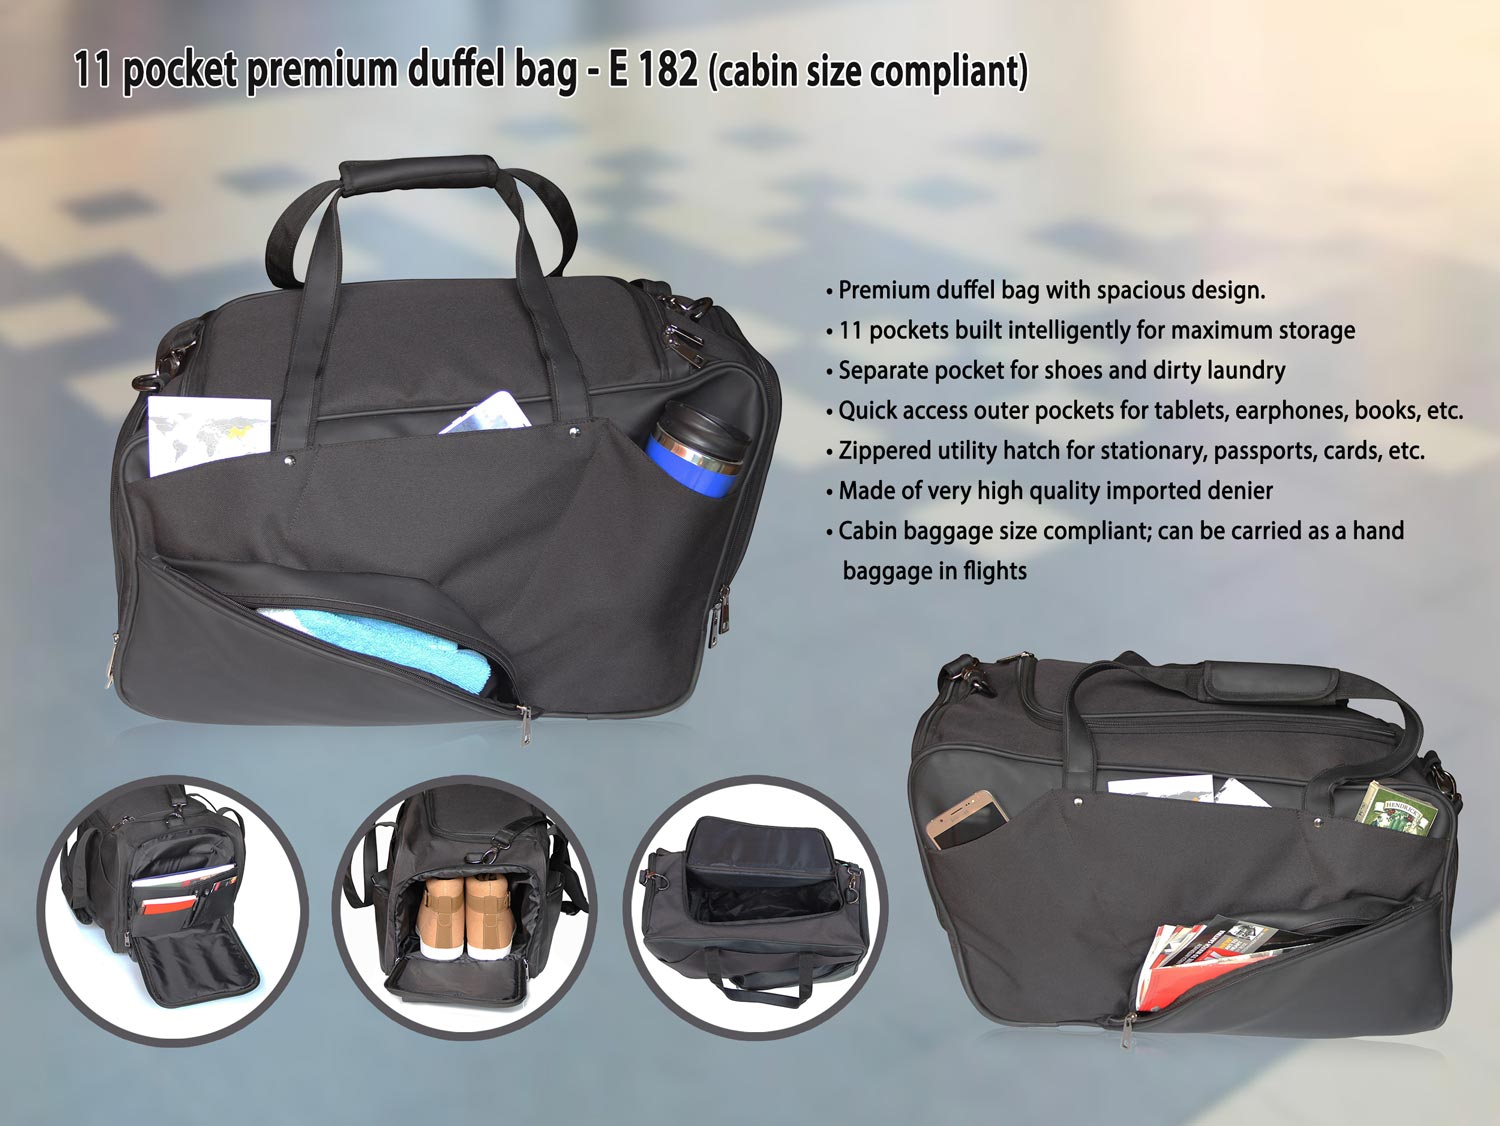 E182 - 11 POCKET PREMIUM DUFFEL BAG (CABIN SIZE COMPLIANT)